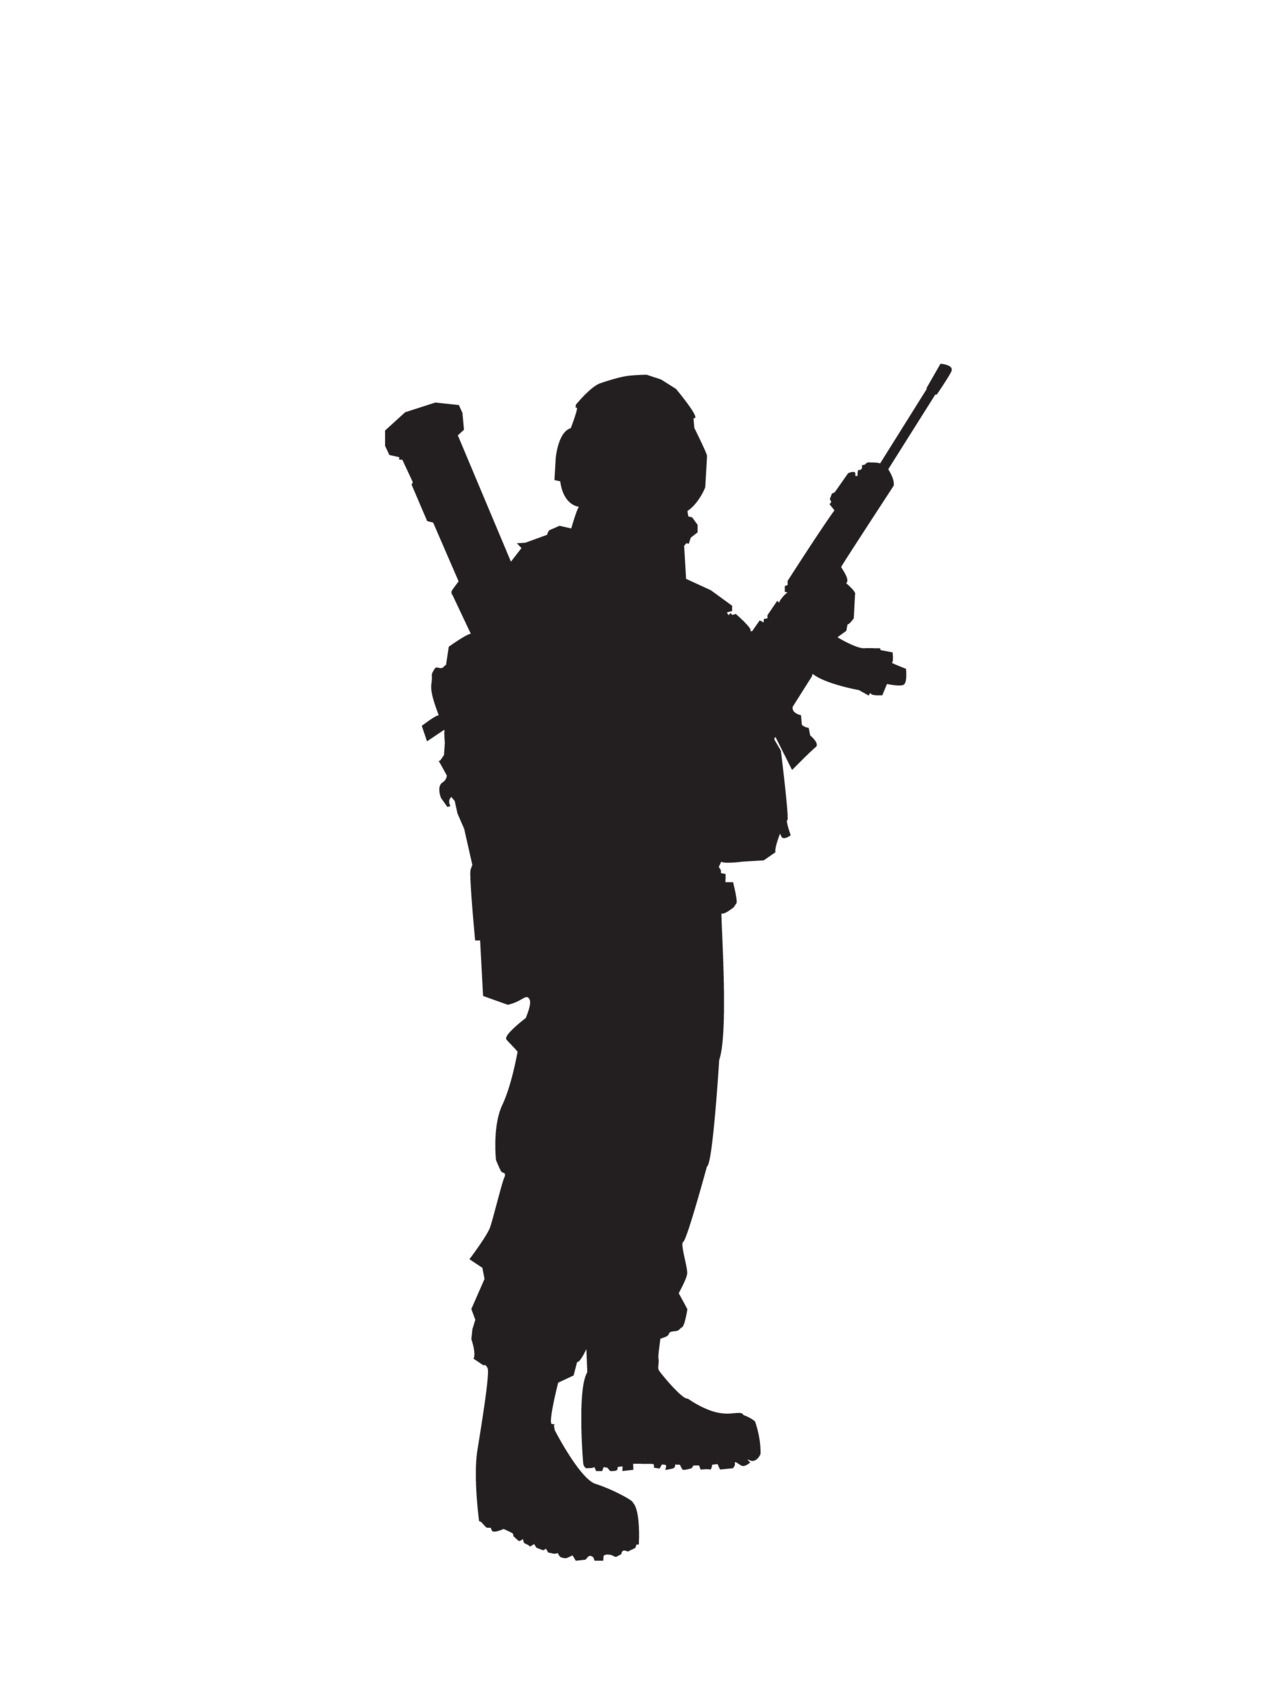 Soldier silhouette. | silhouette | Pinterest